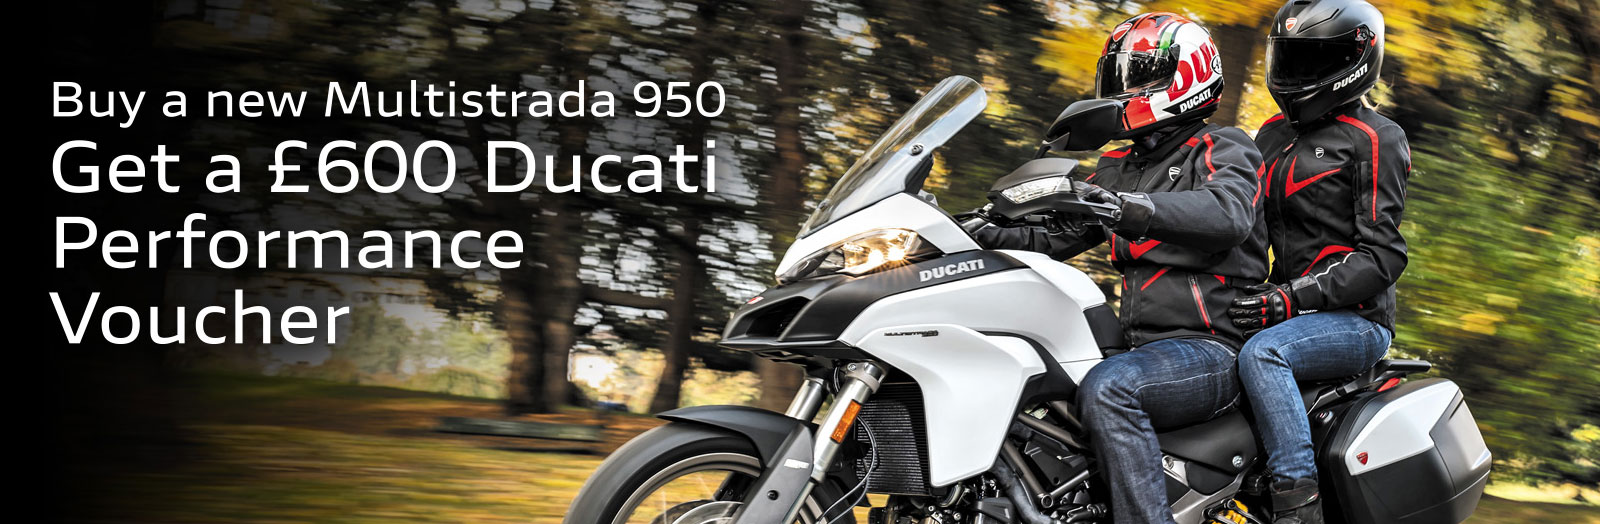 Multistrada Offer